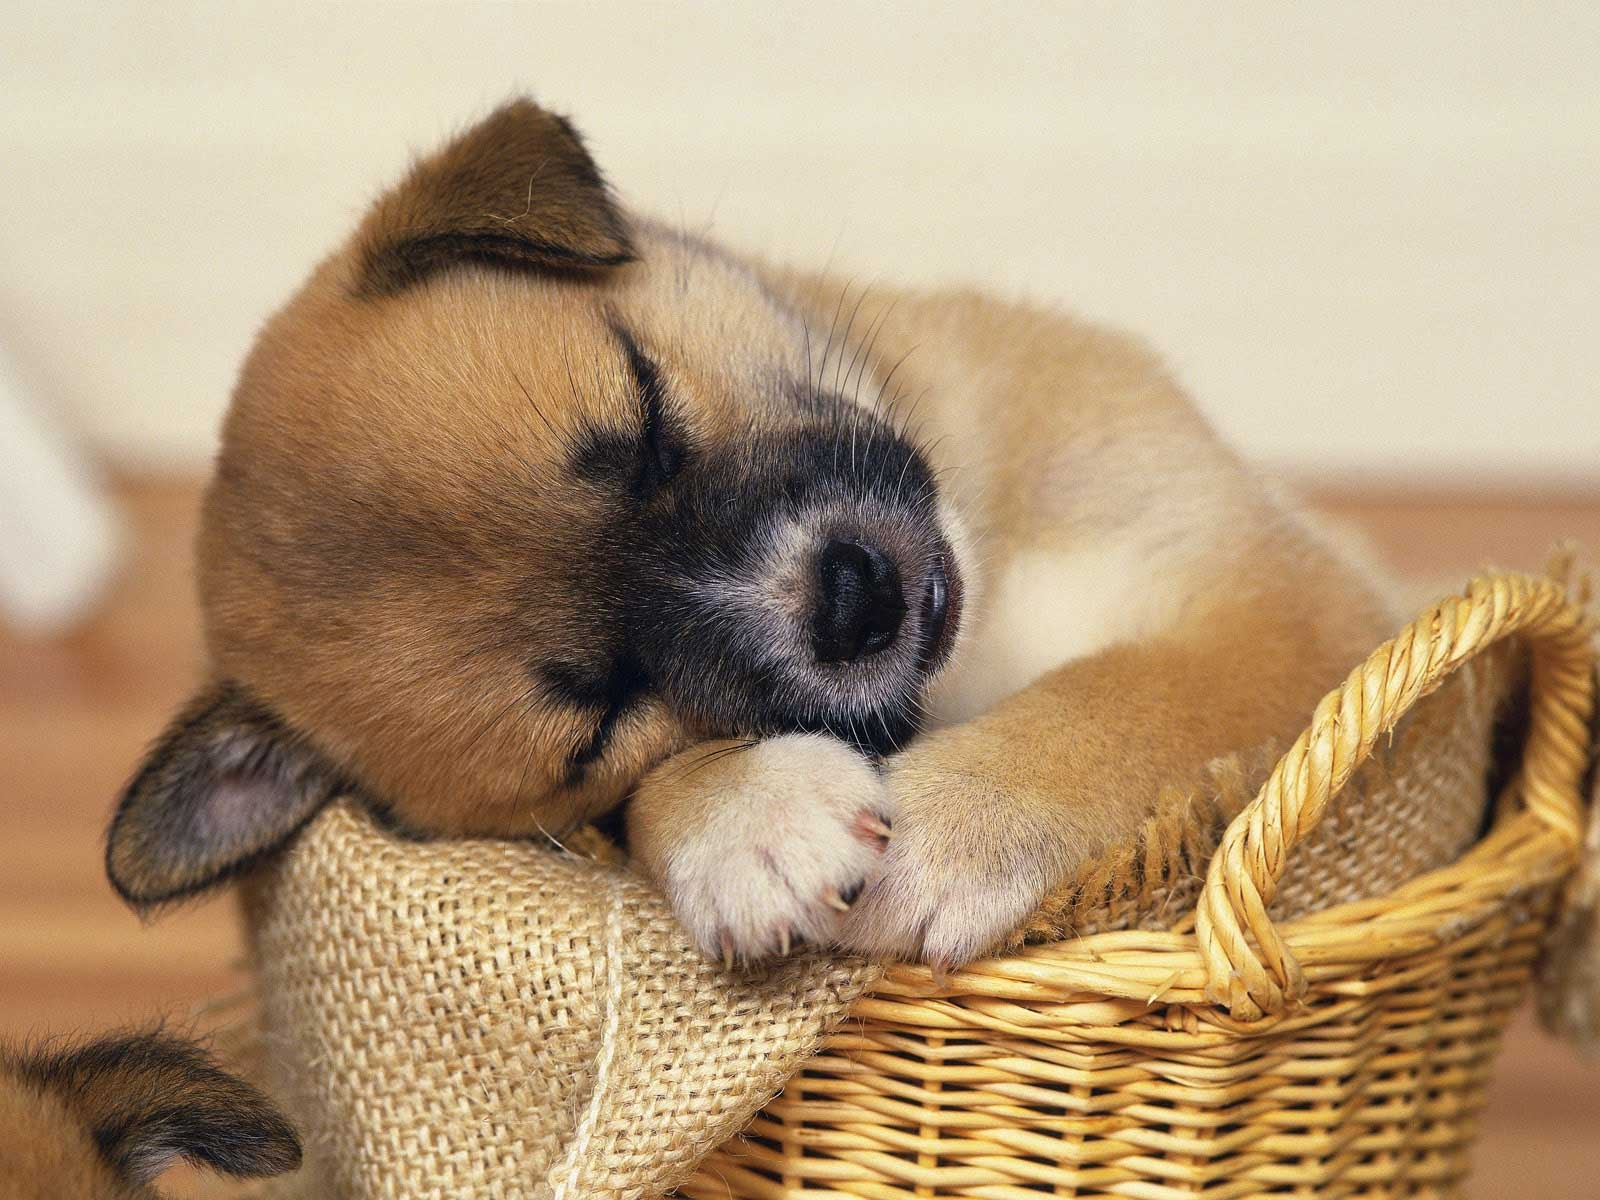 CUTE-SLEEPING-PUPPIES31.jpg | p u p s | Pinterest | Baby puppies ...